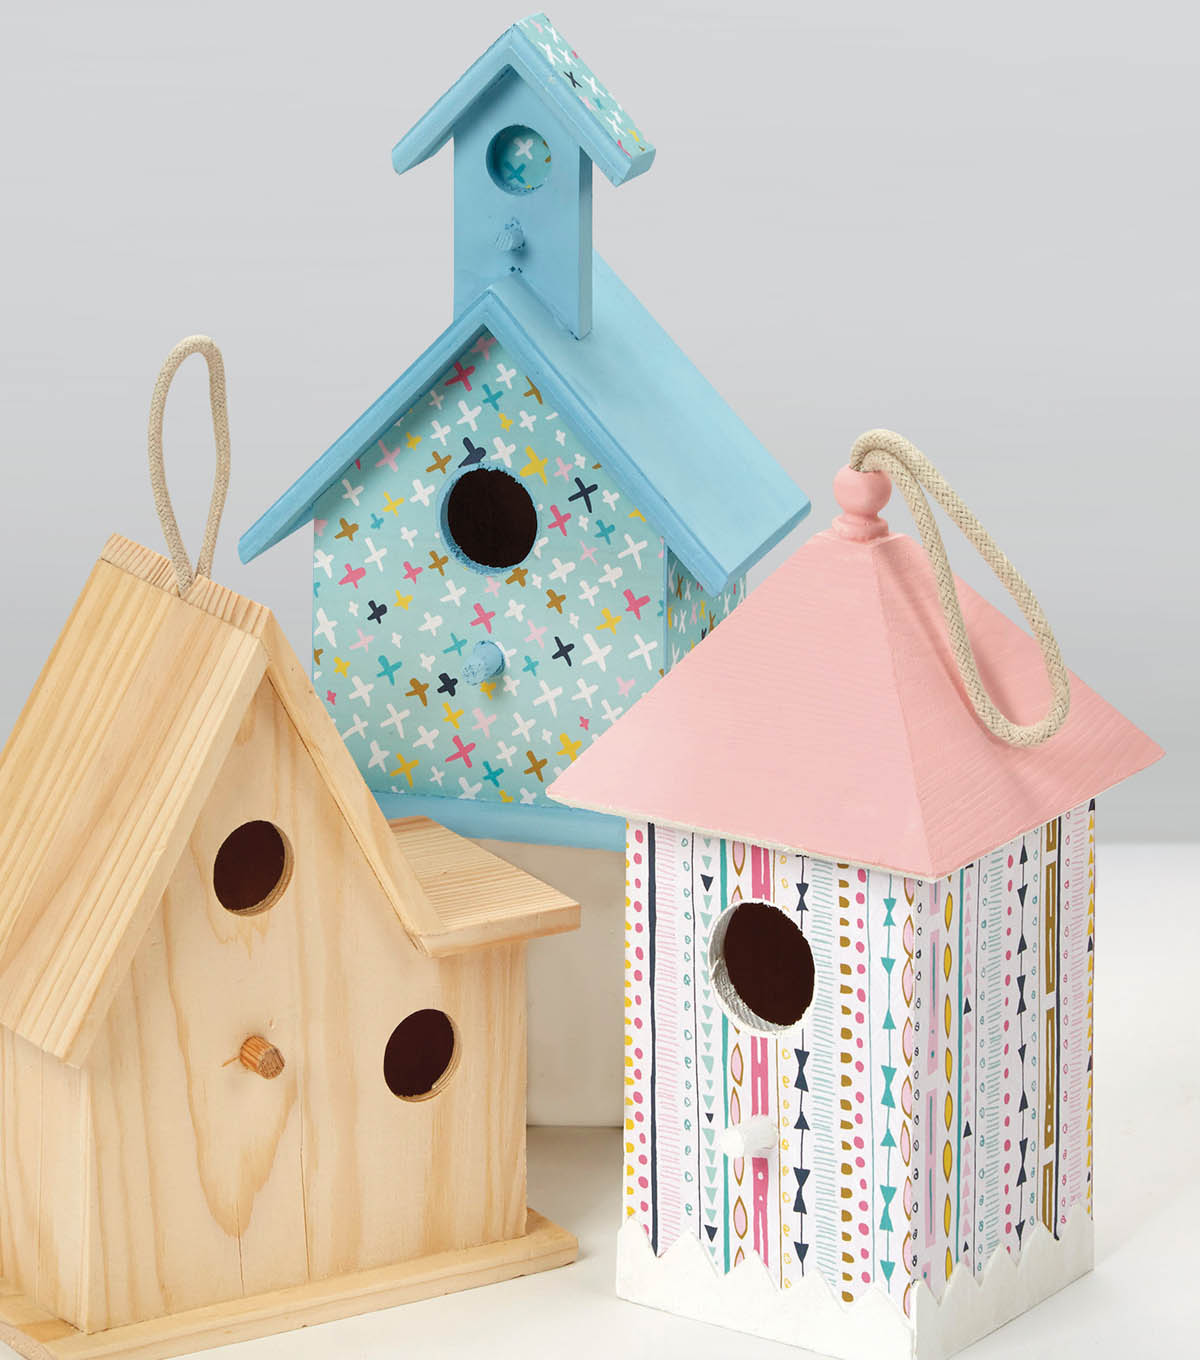 Paper Covered and Painted Bird Houses